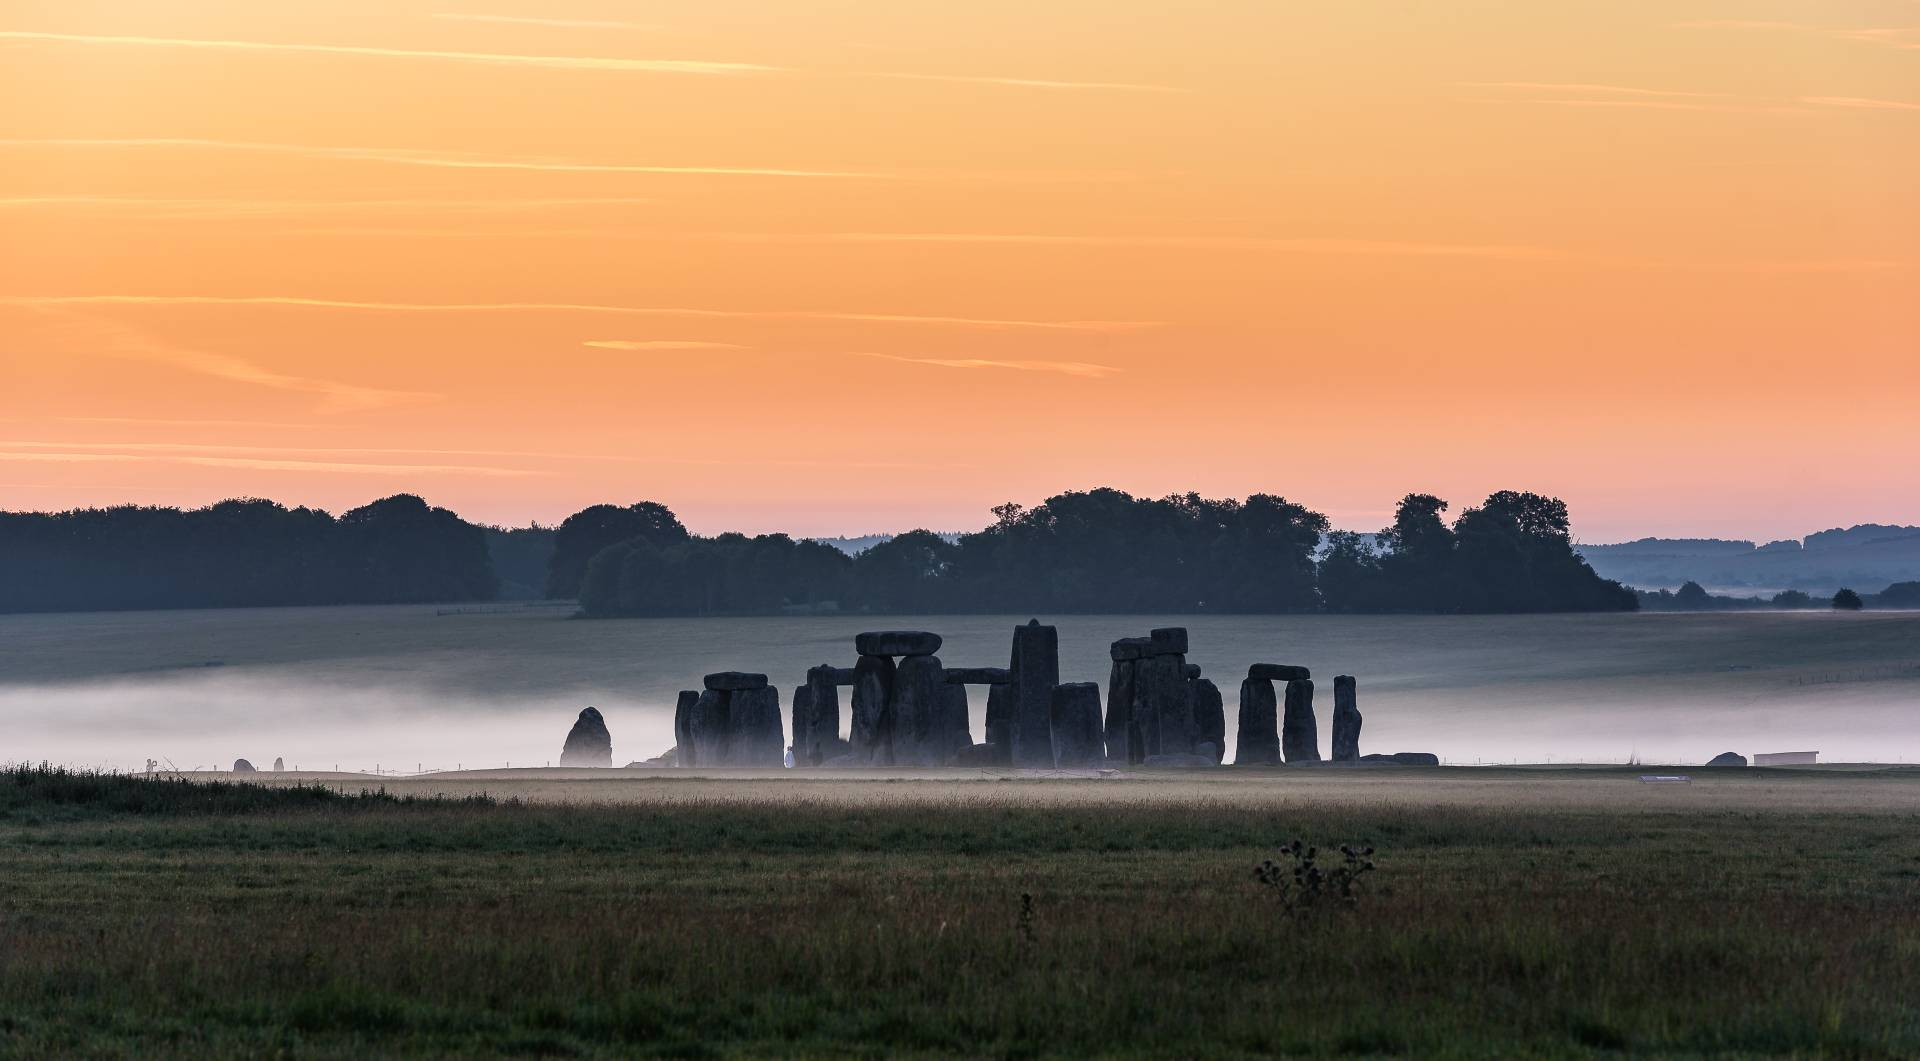 Stonehenge in mist, at Sunrise. The ancient stone monument is located at Salisbury, Wiltshire, England, UK. © Image Credit: Andrei Botnari   Licensed from DreamsTime.com (Editorial/Commercial Use Stock Photo)